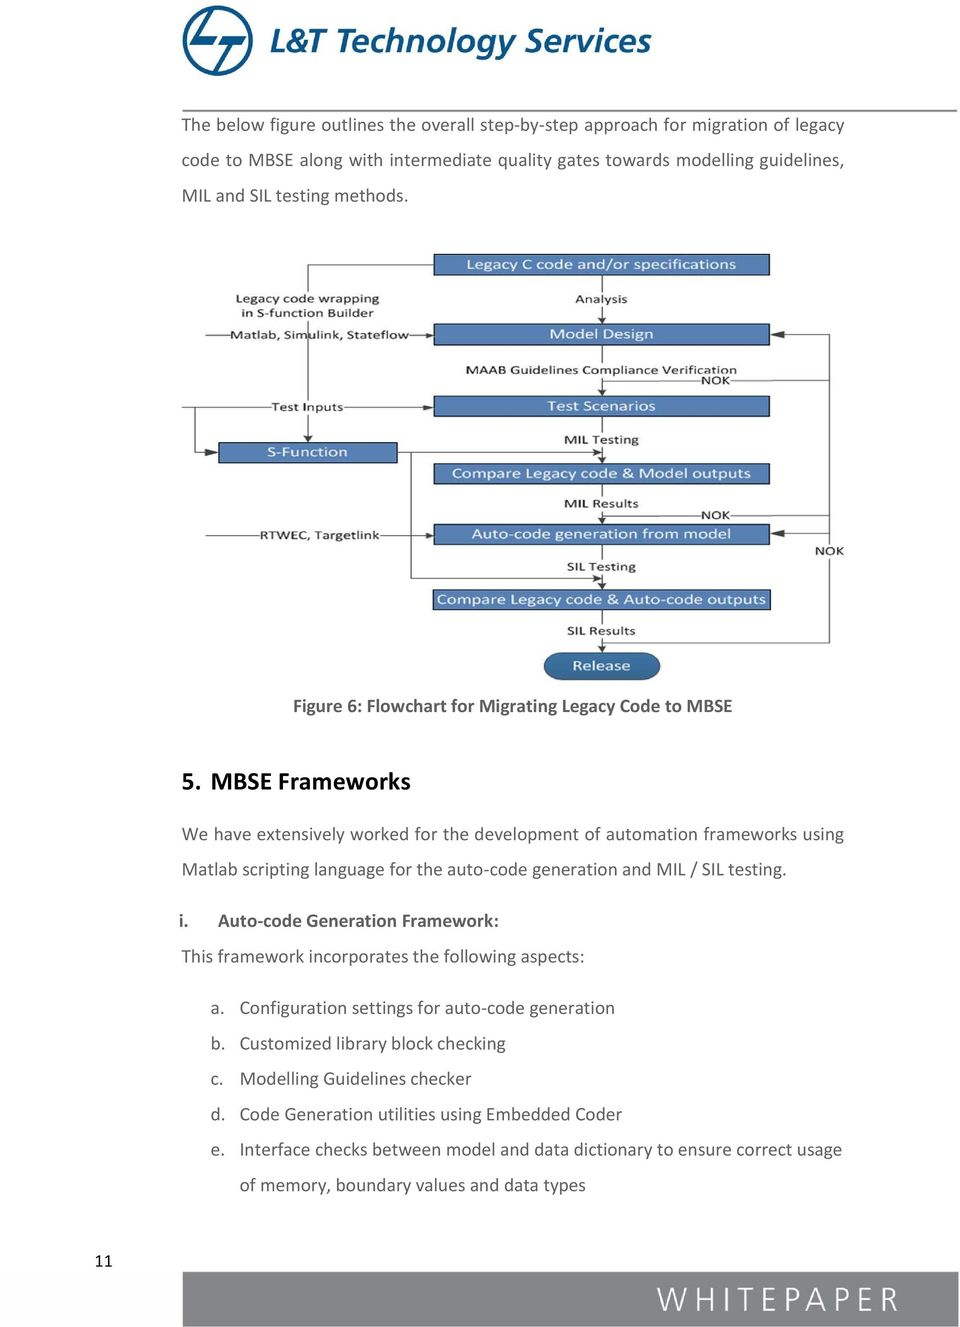 MBSE Frameworks We have extensively worked for the development of automation frameworks using Matlab scripting language for the auto-code generation and MIL / SIL testing. i.